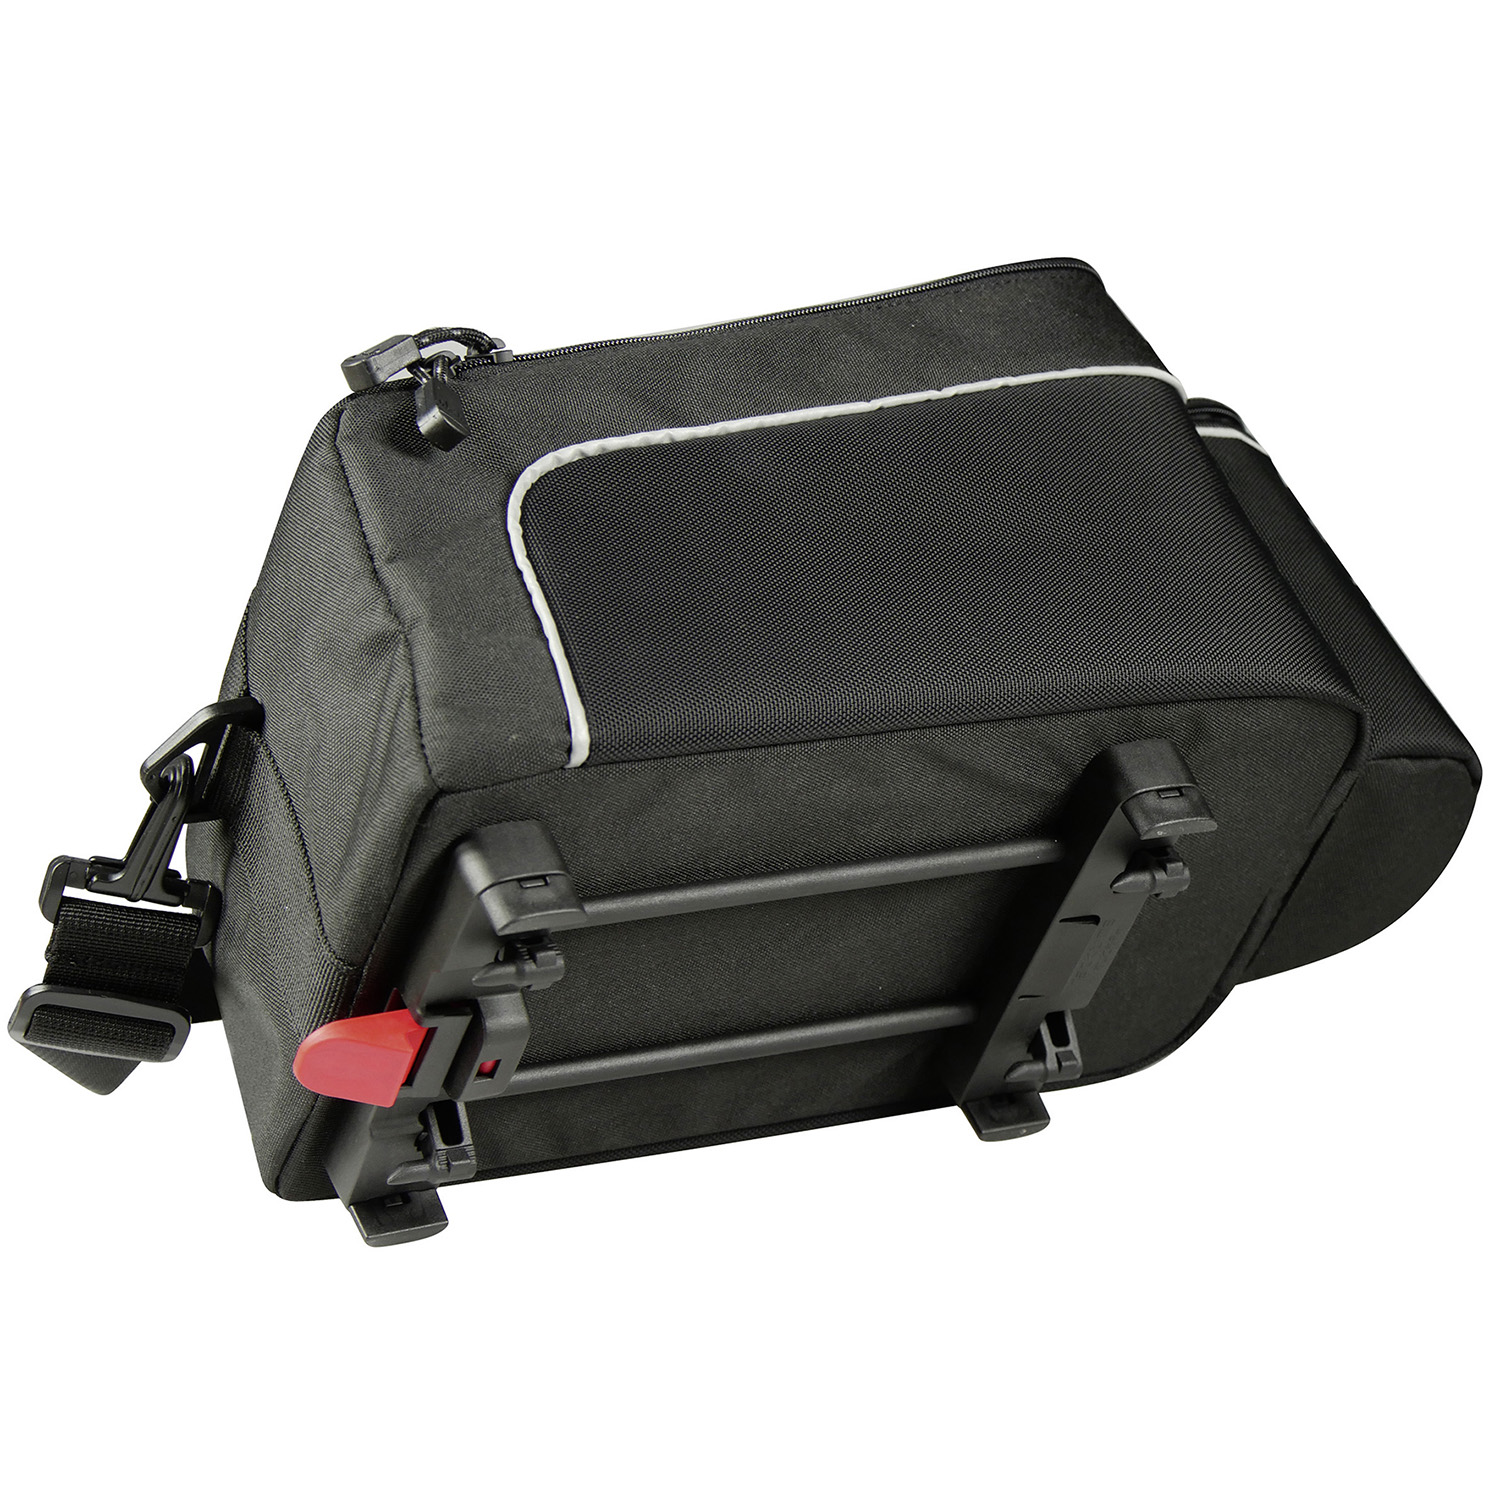 Rackpack Light, bag with bottle compartment – only for Racktime racks